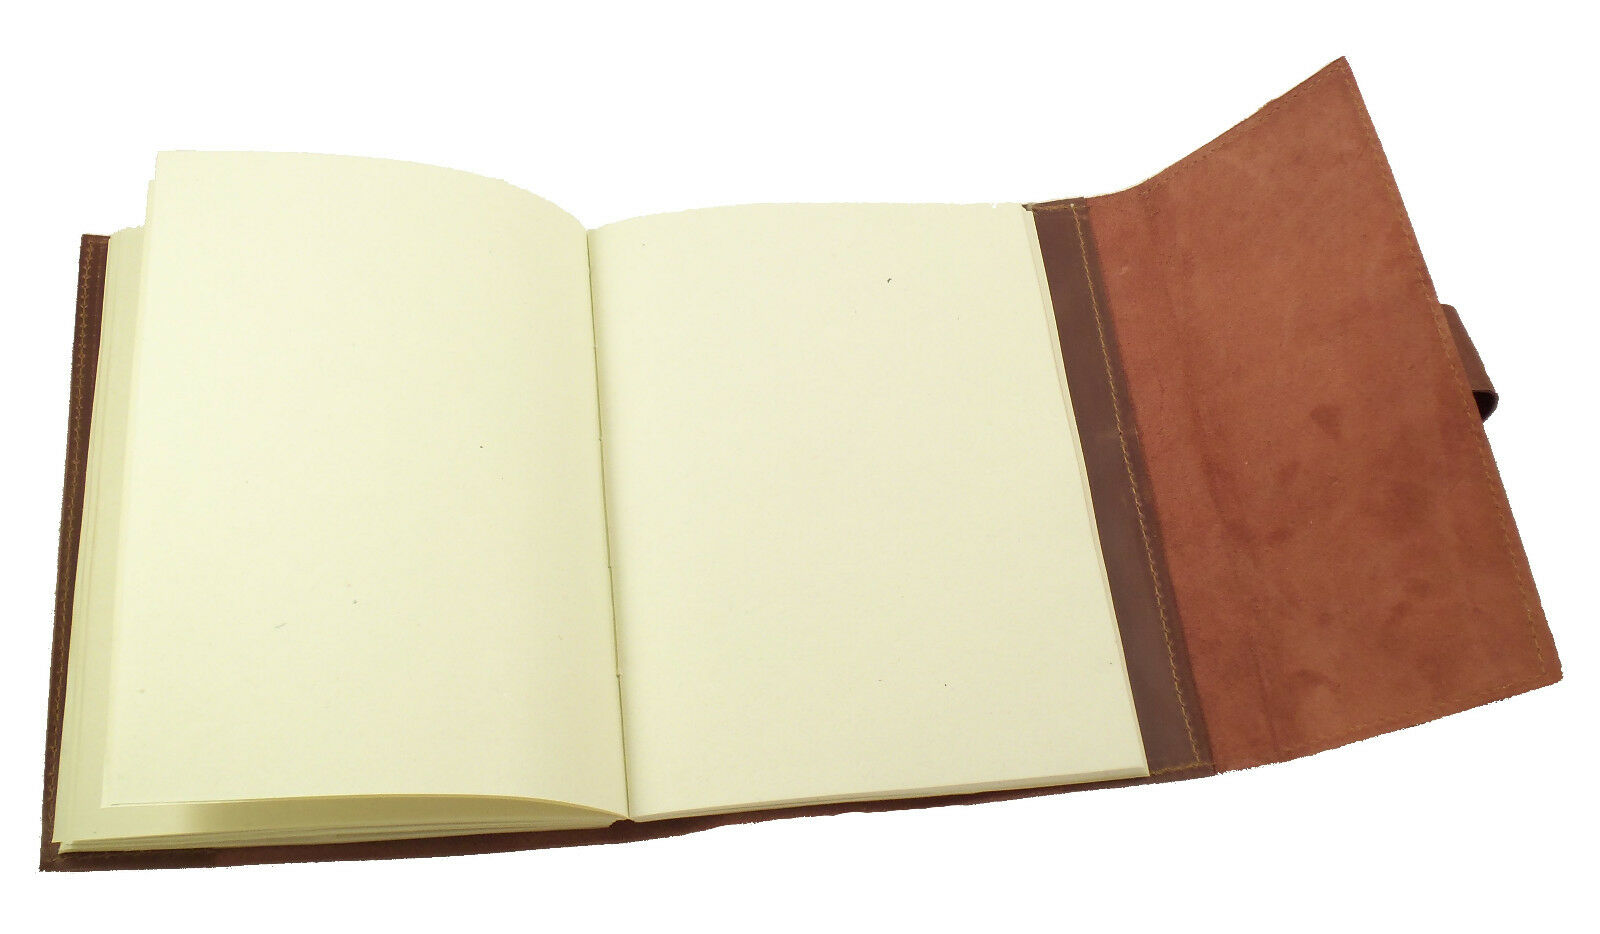 Refillable Leather Journal Sketchbook Travel Notebook Blank Diary Vintage Rustic 2